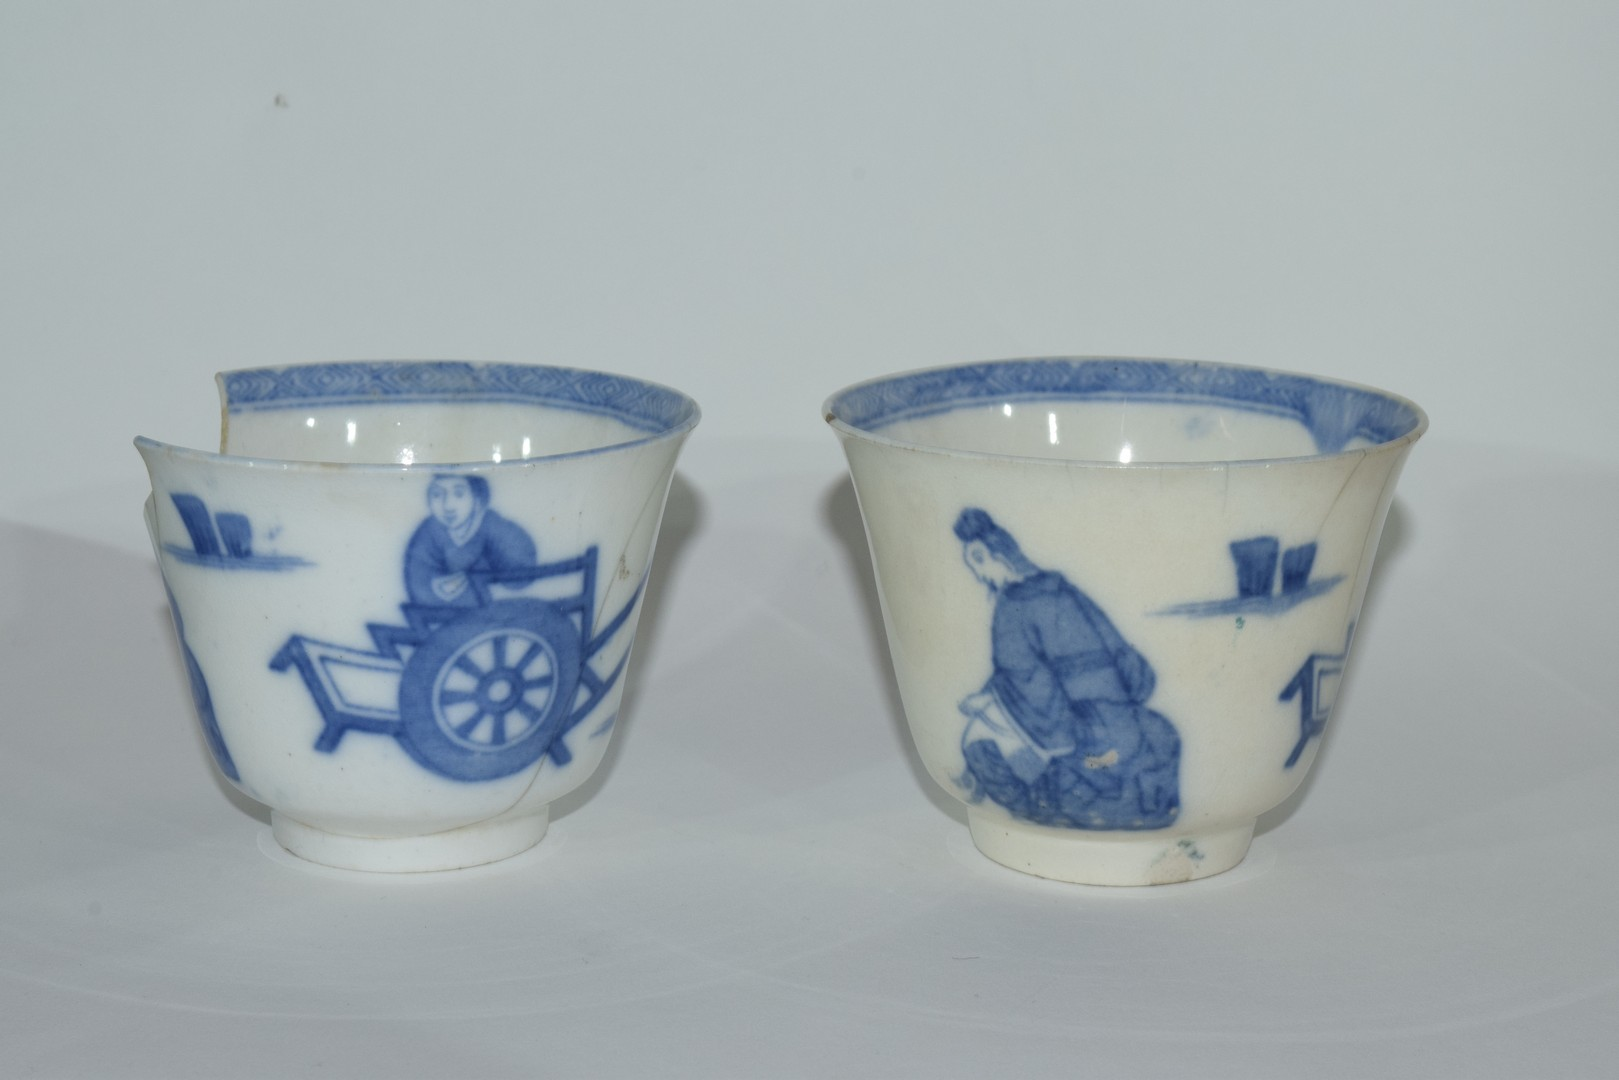 Group of Chinese export porcelain plates - Image 6 of 15